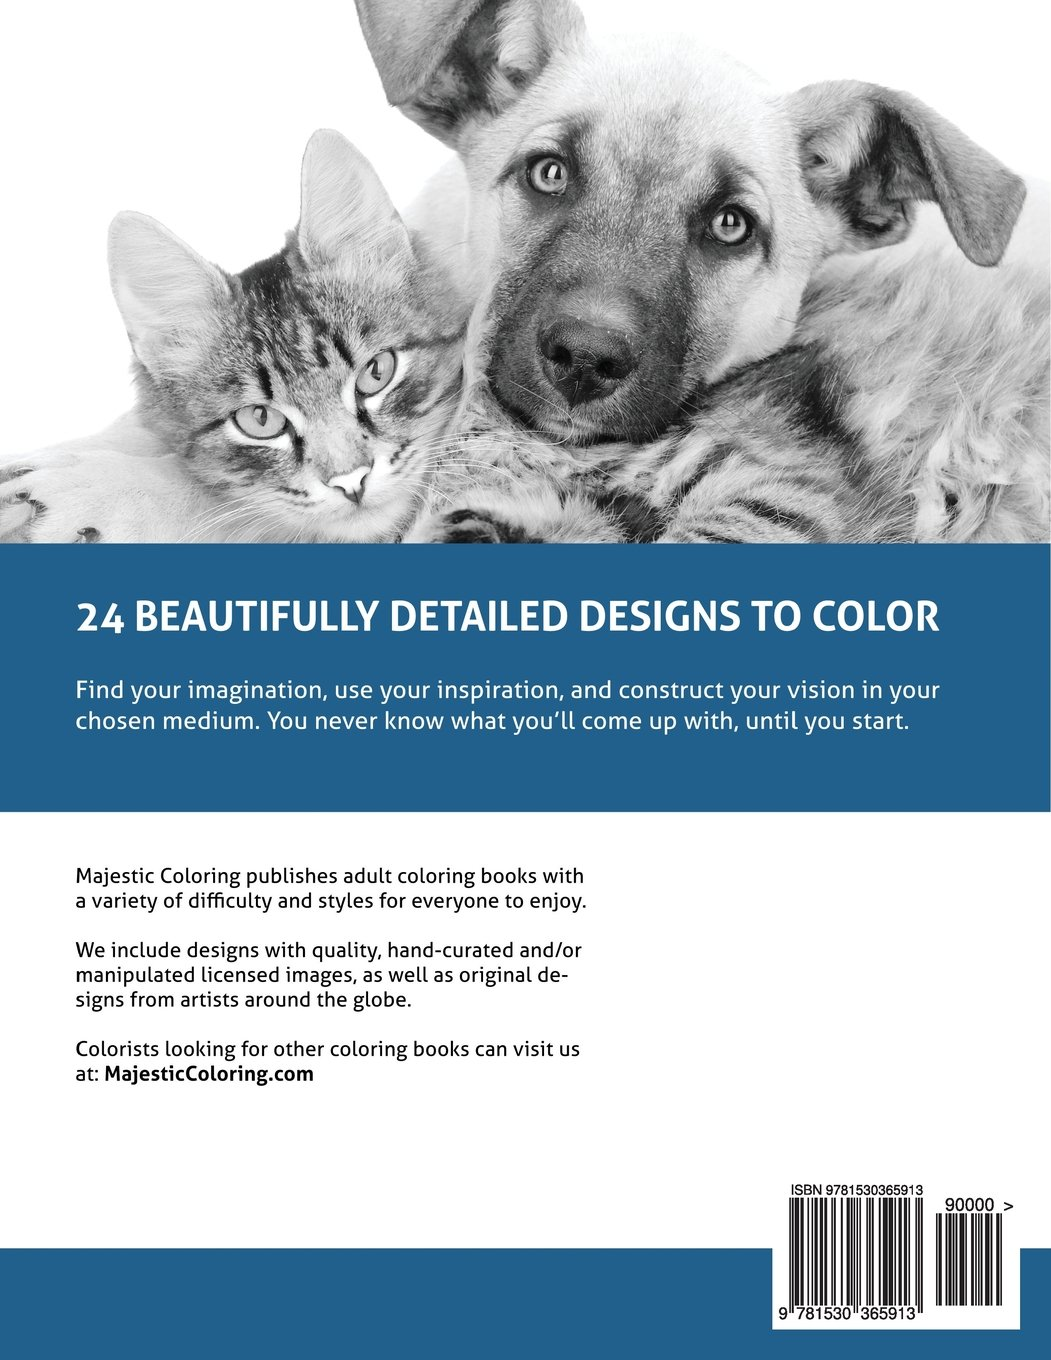 Amazon Funny Pets Grayscale Photo Coloring Book For Adults 9781530365913 Majestic Books